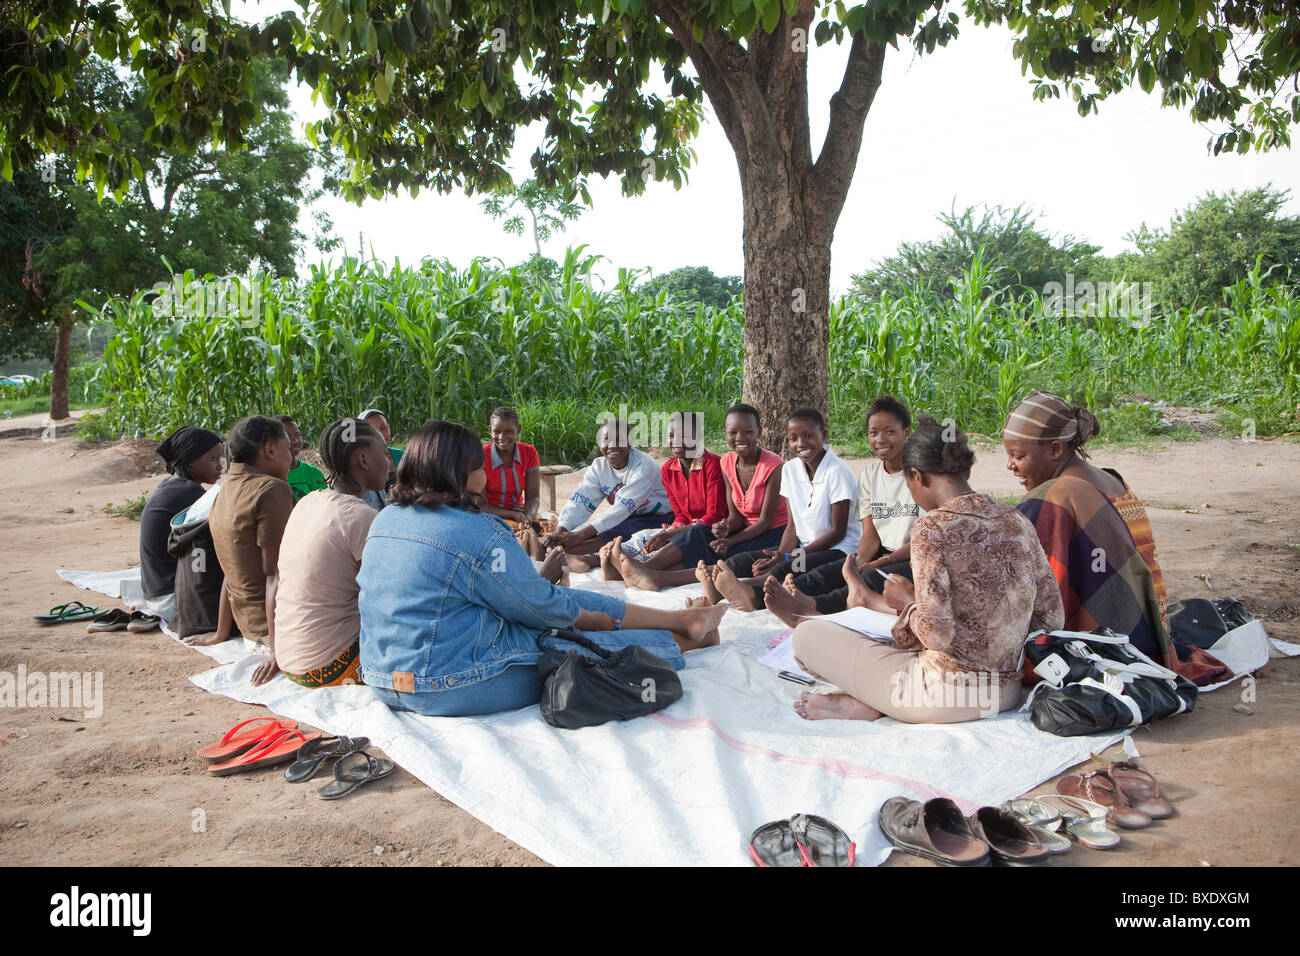 Women attend a community meeting in Dodoma, Tanzania, East Africa. Stock Photo